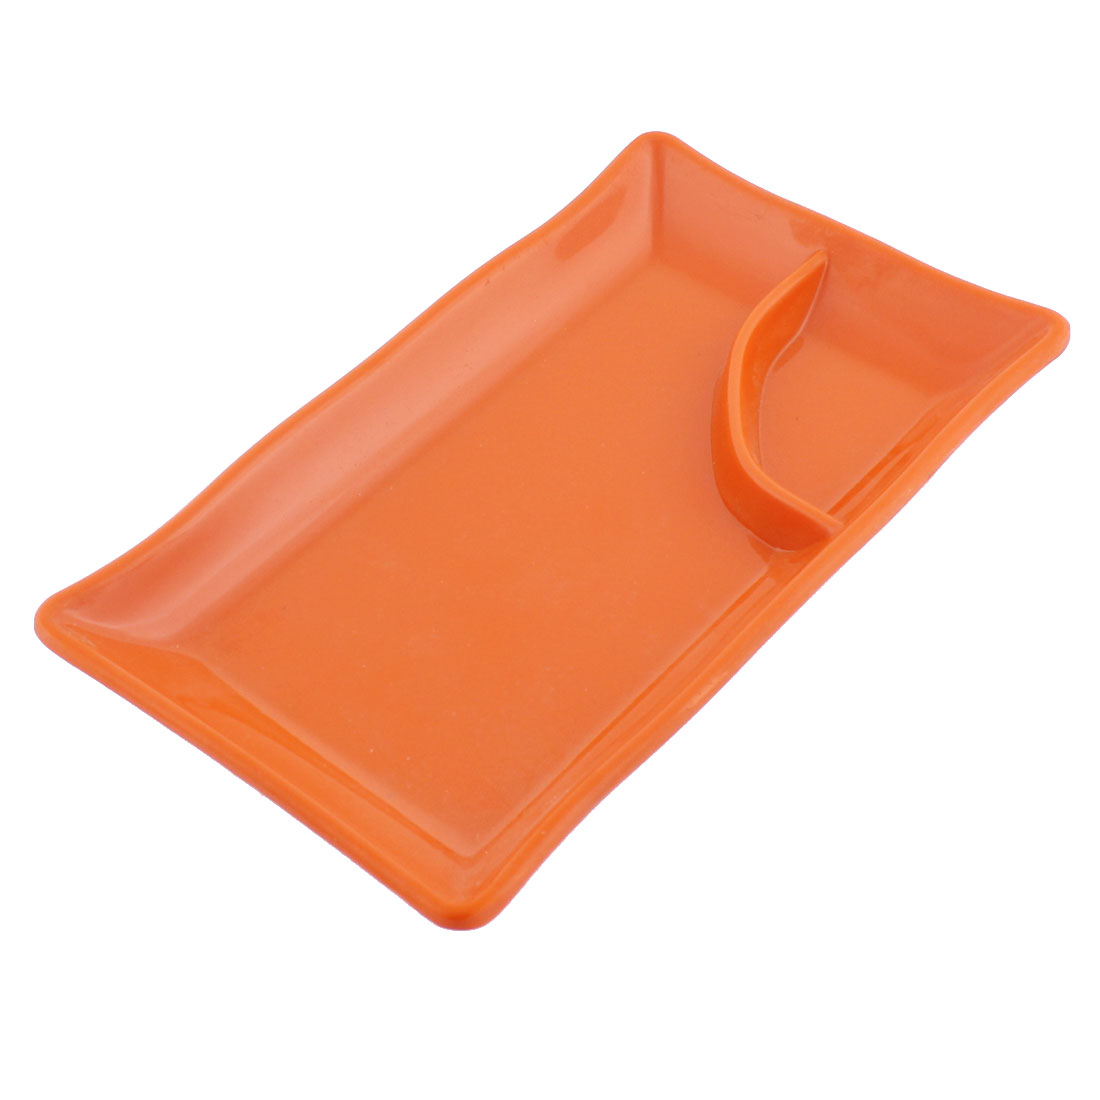 Plastic 2 Compartments Dumplings Sushi Soy Sauce Dipping Dish Plate Orangered